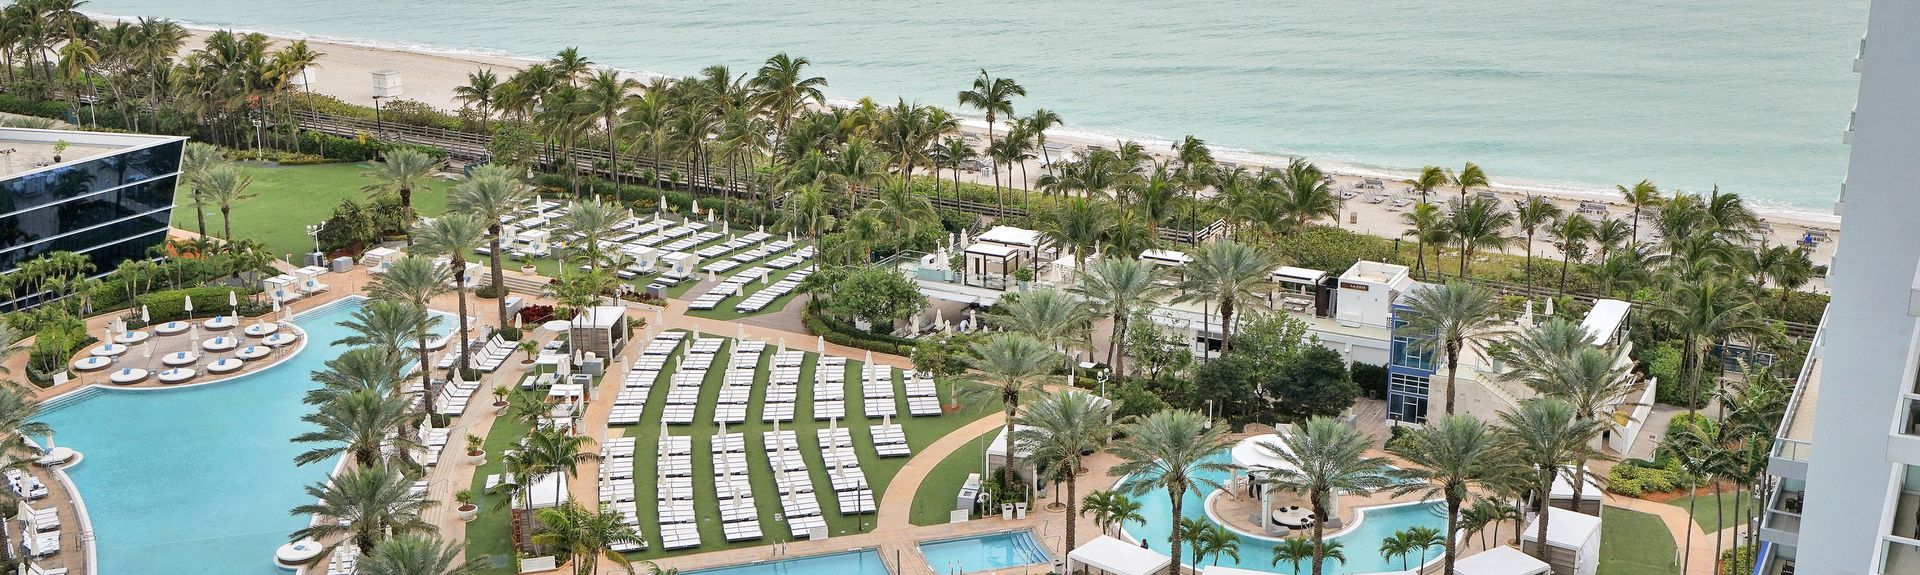 Fontainebleau Resort (Miami, Florida, USA)